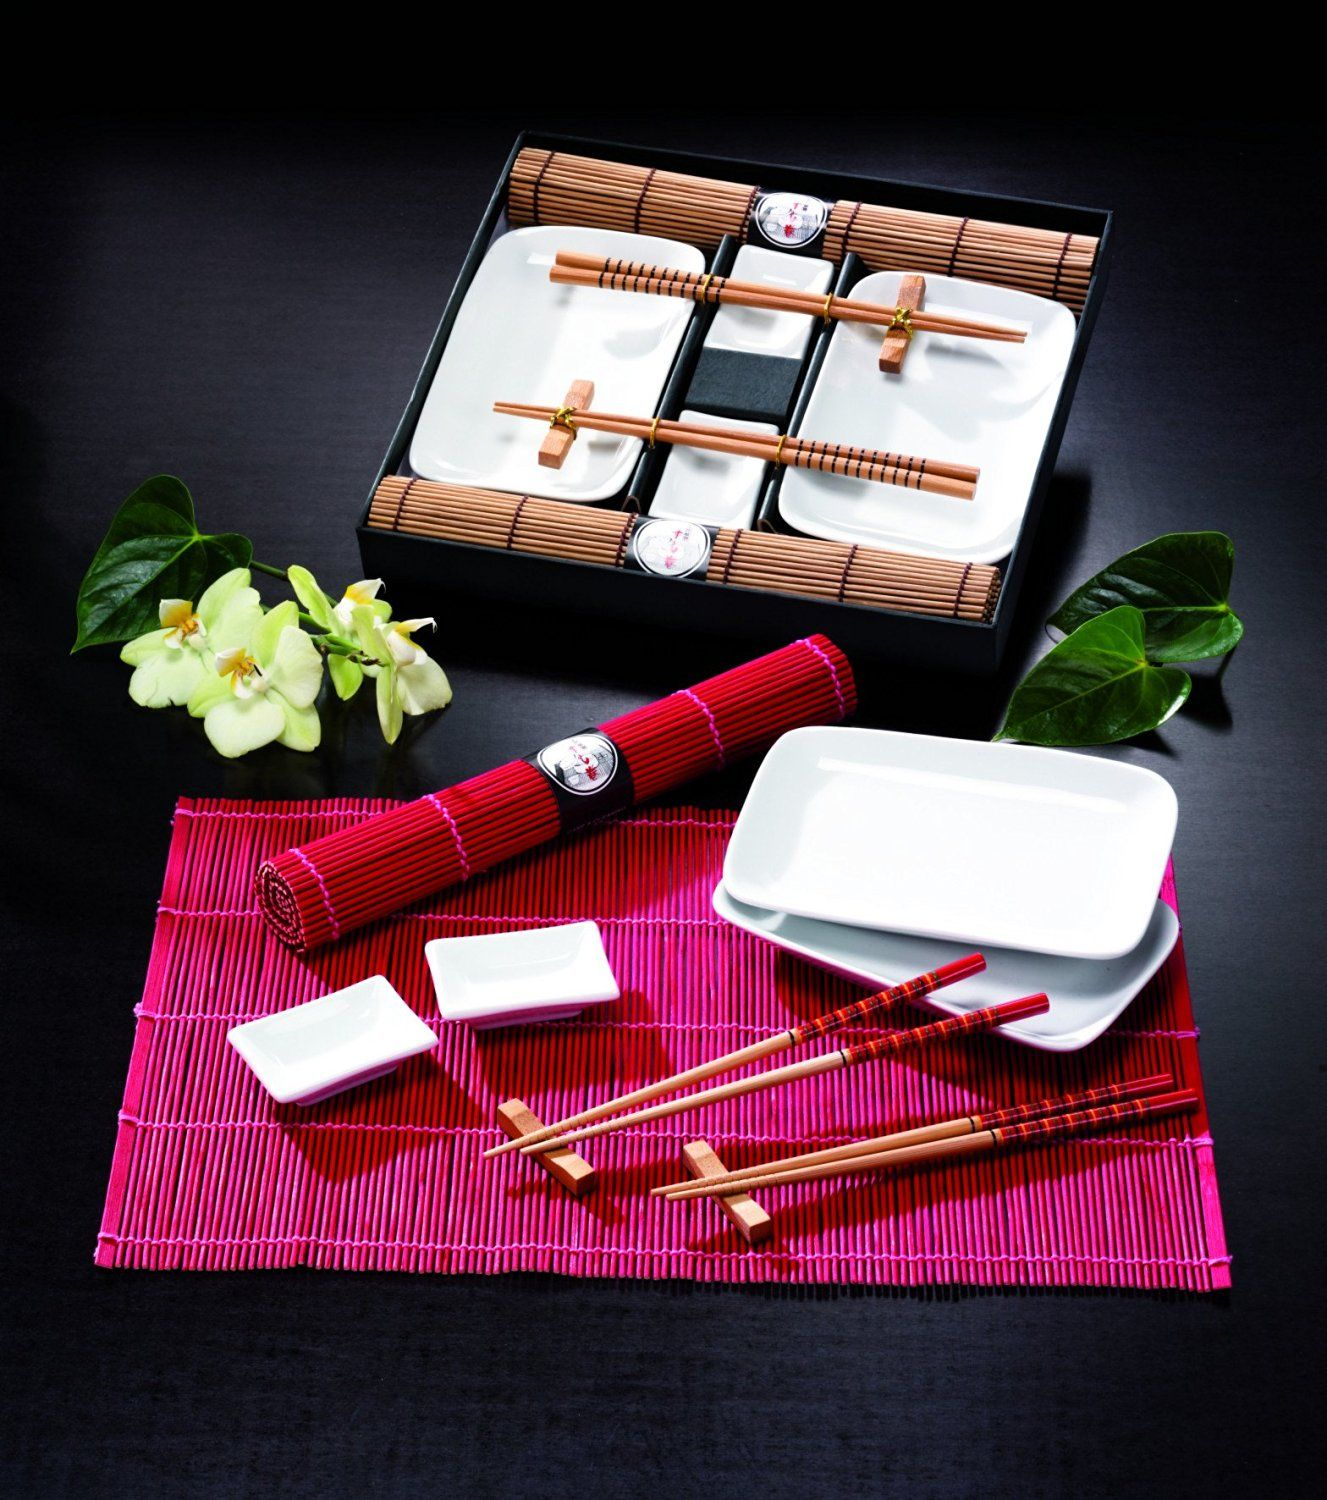 Tischgeschirr Japan Sushi Set, braun f. 2 Personen, Natur: Amazon.de ...